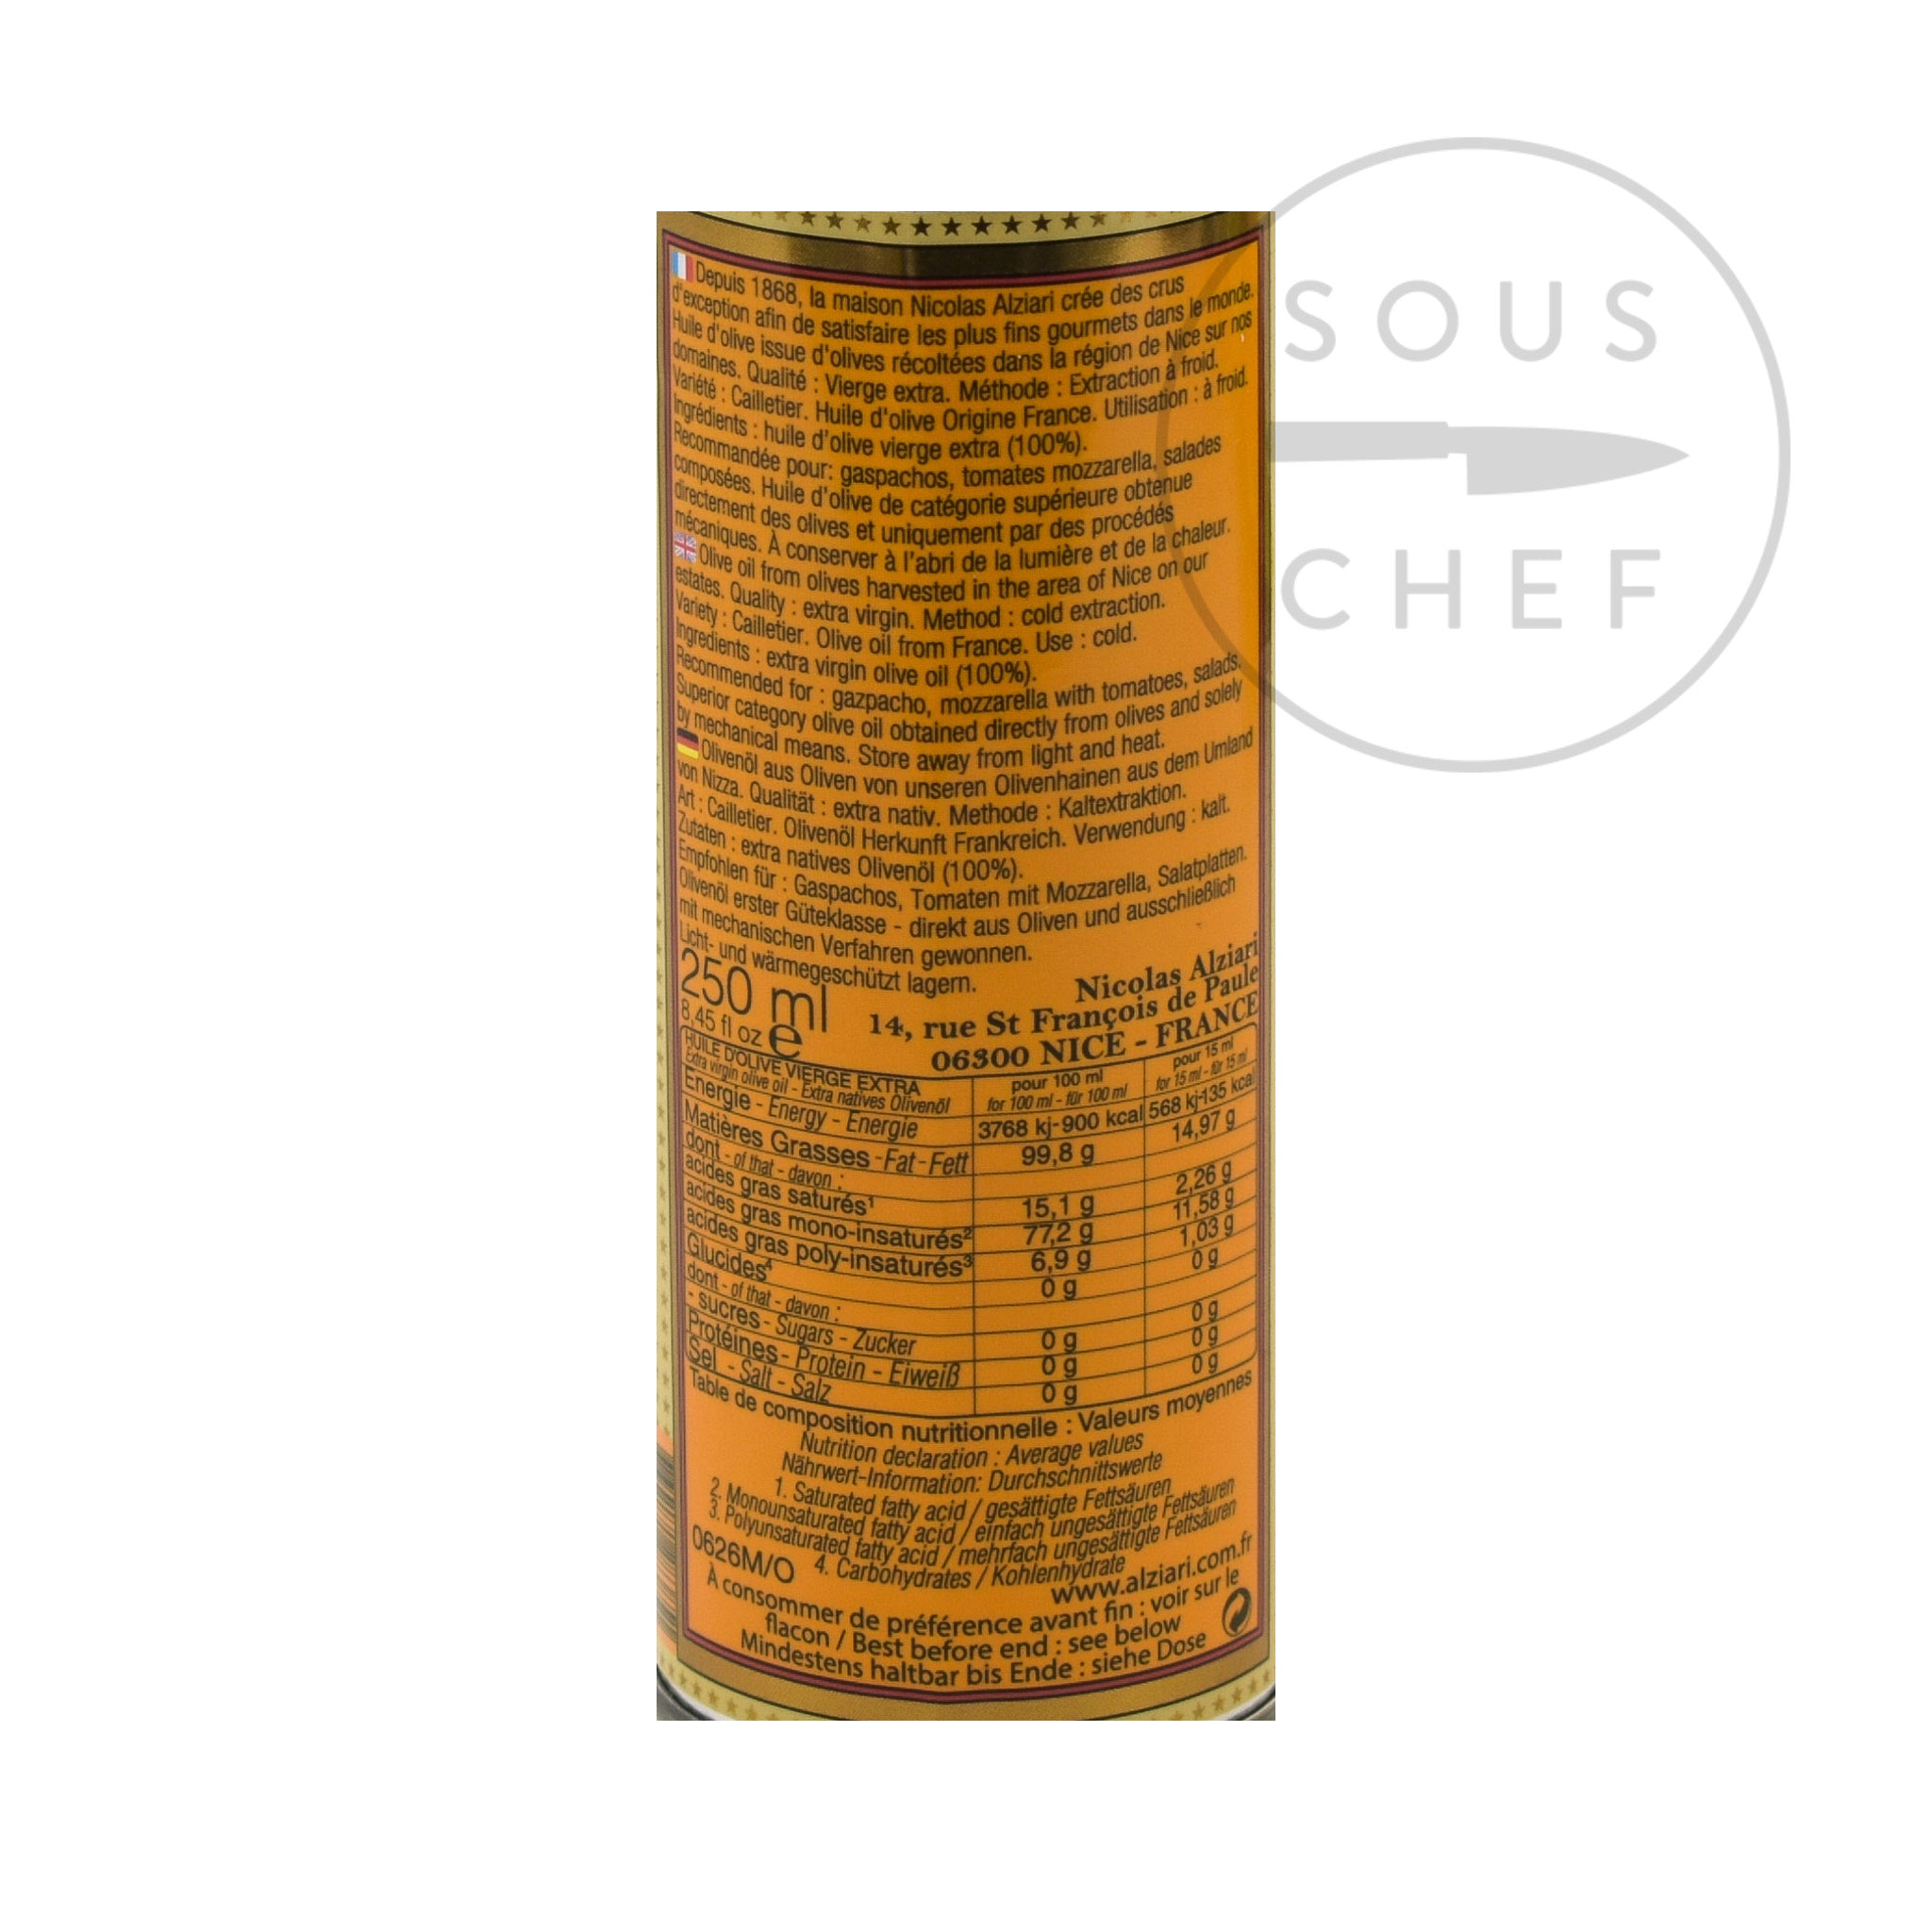 Nicolas Alziari DOP 'Cuvee Cesar' Olive Oil from Provence 250ml